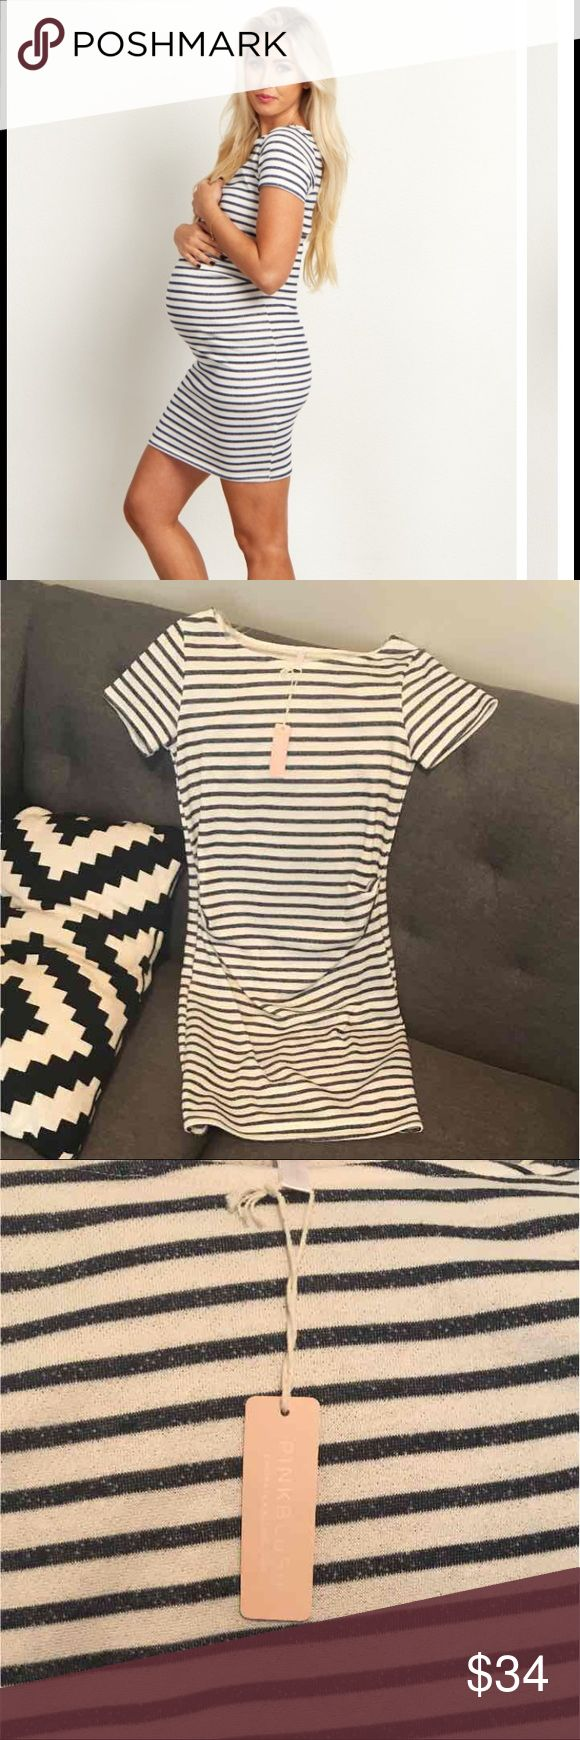 Pink blush Navy stripe maternity dress NWT in perfect condition. Never worn. Dresses Mini